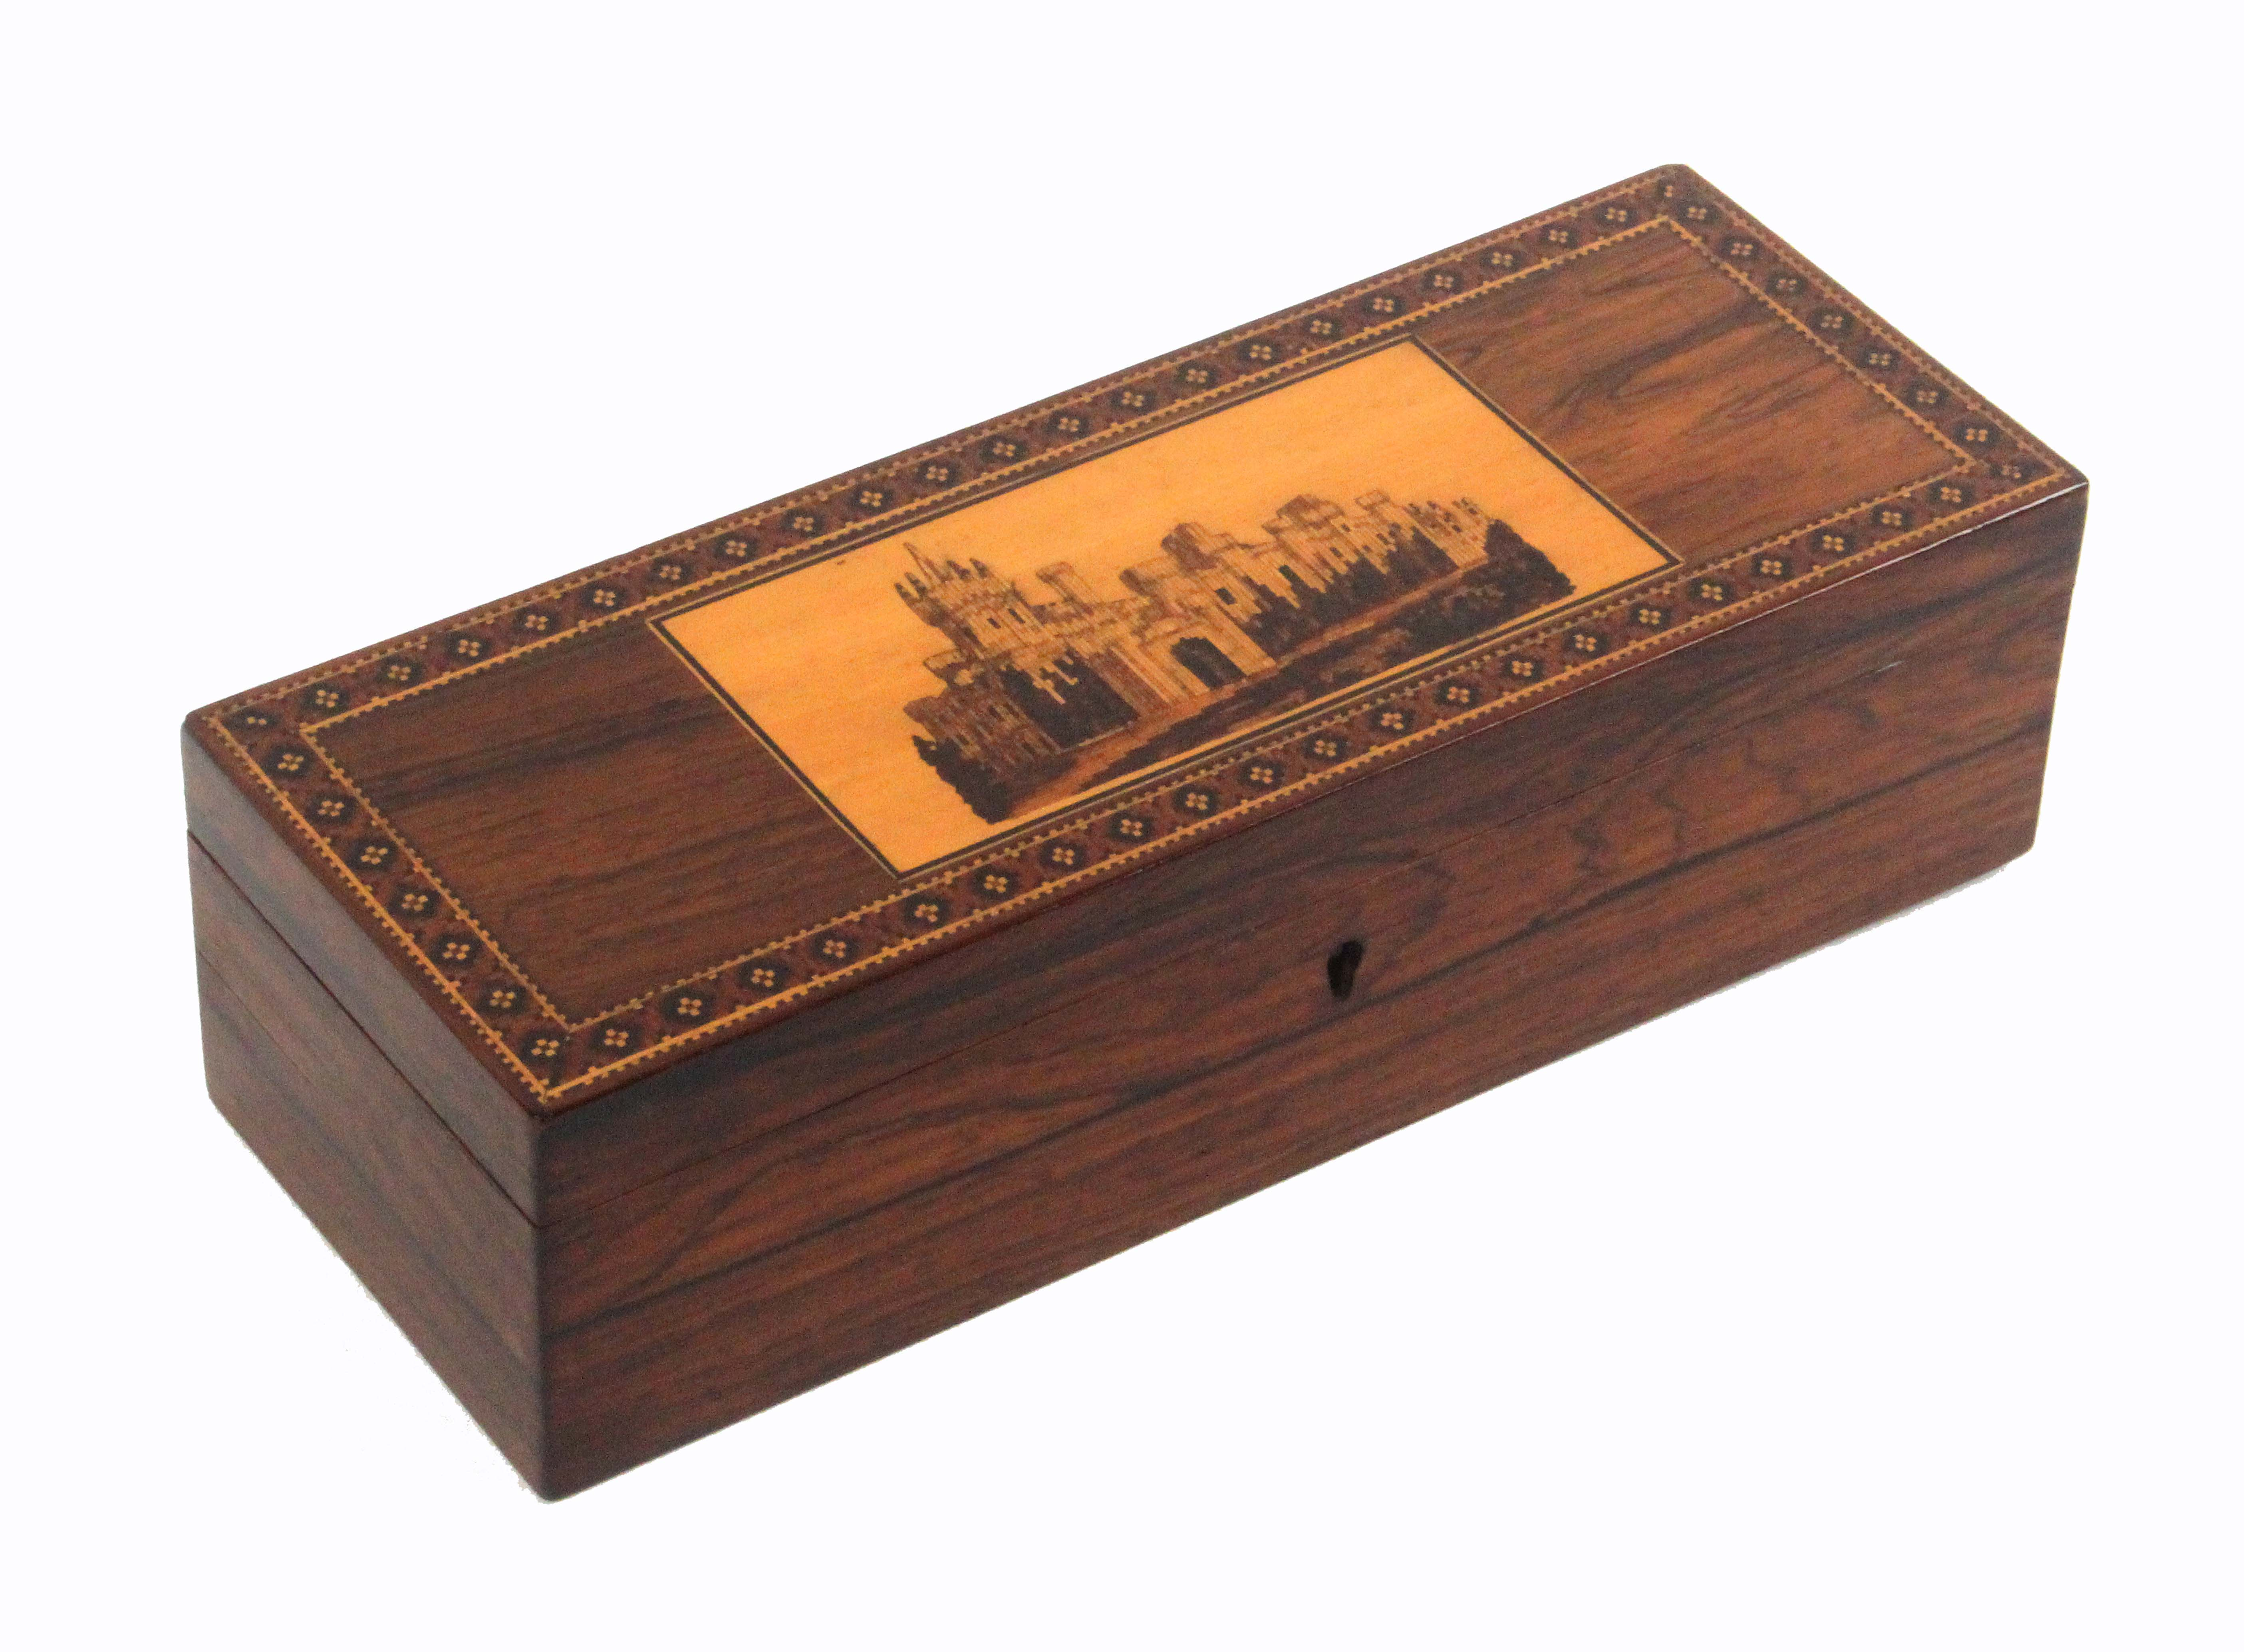 Lot 19 - A Tunbridge ware rosewood glove box, of rectangular form, the lid with an inset mosaic panel